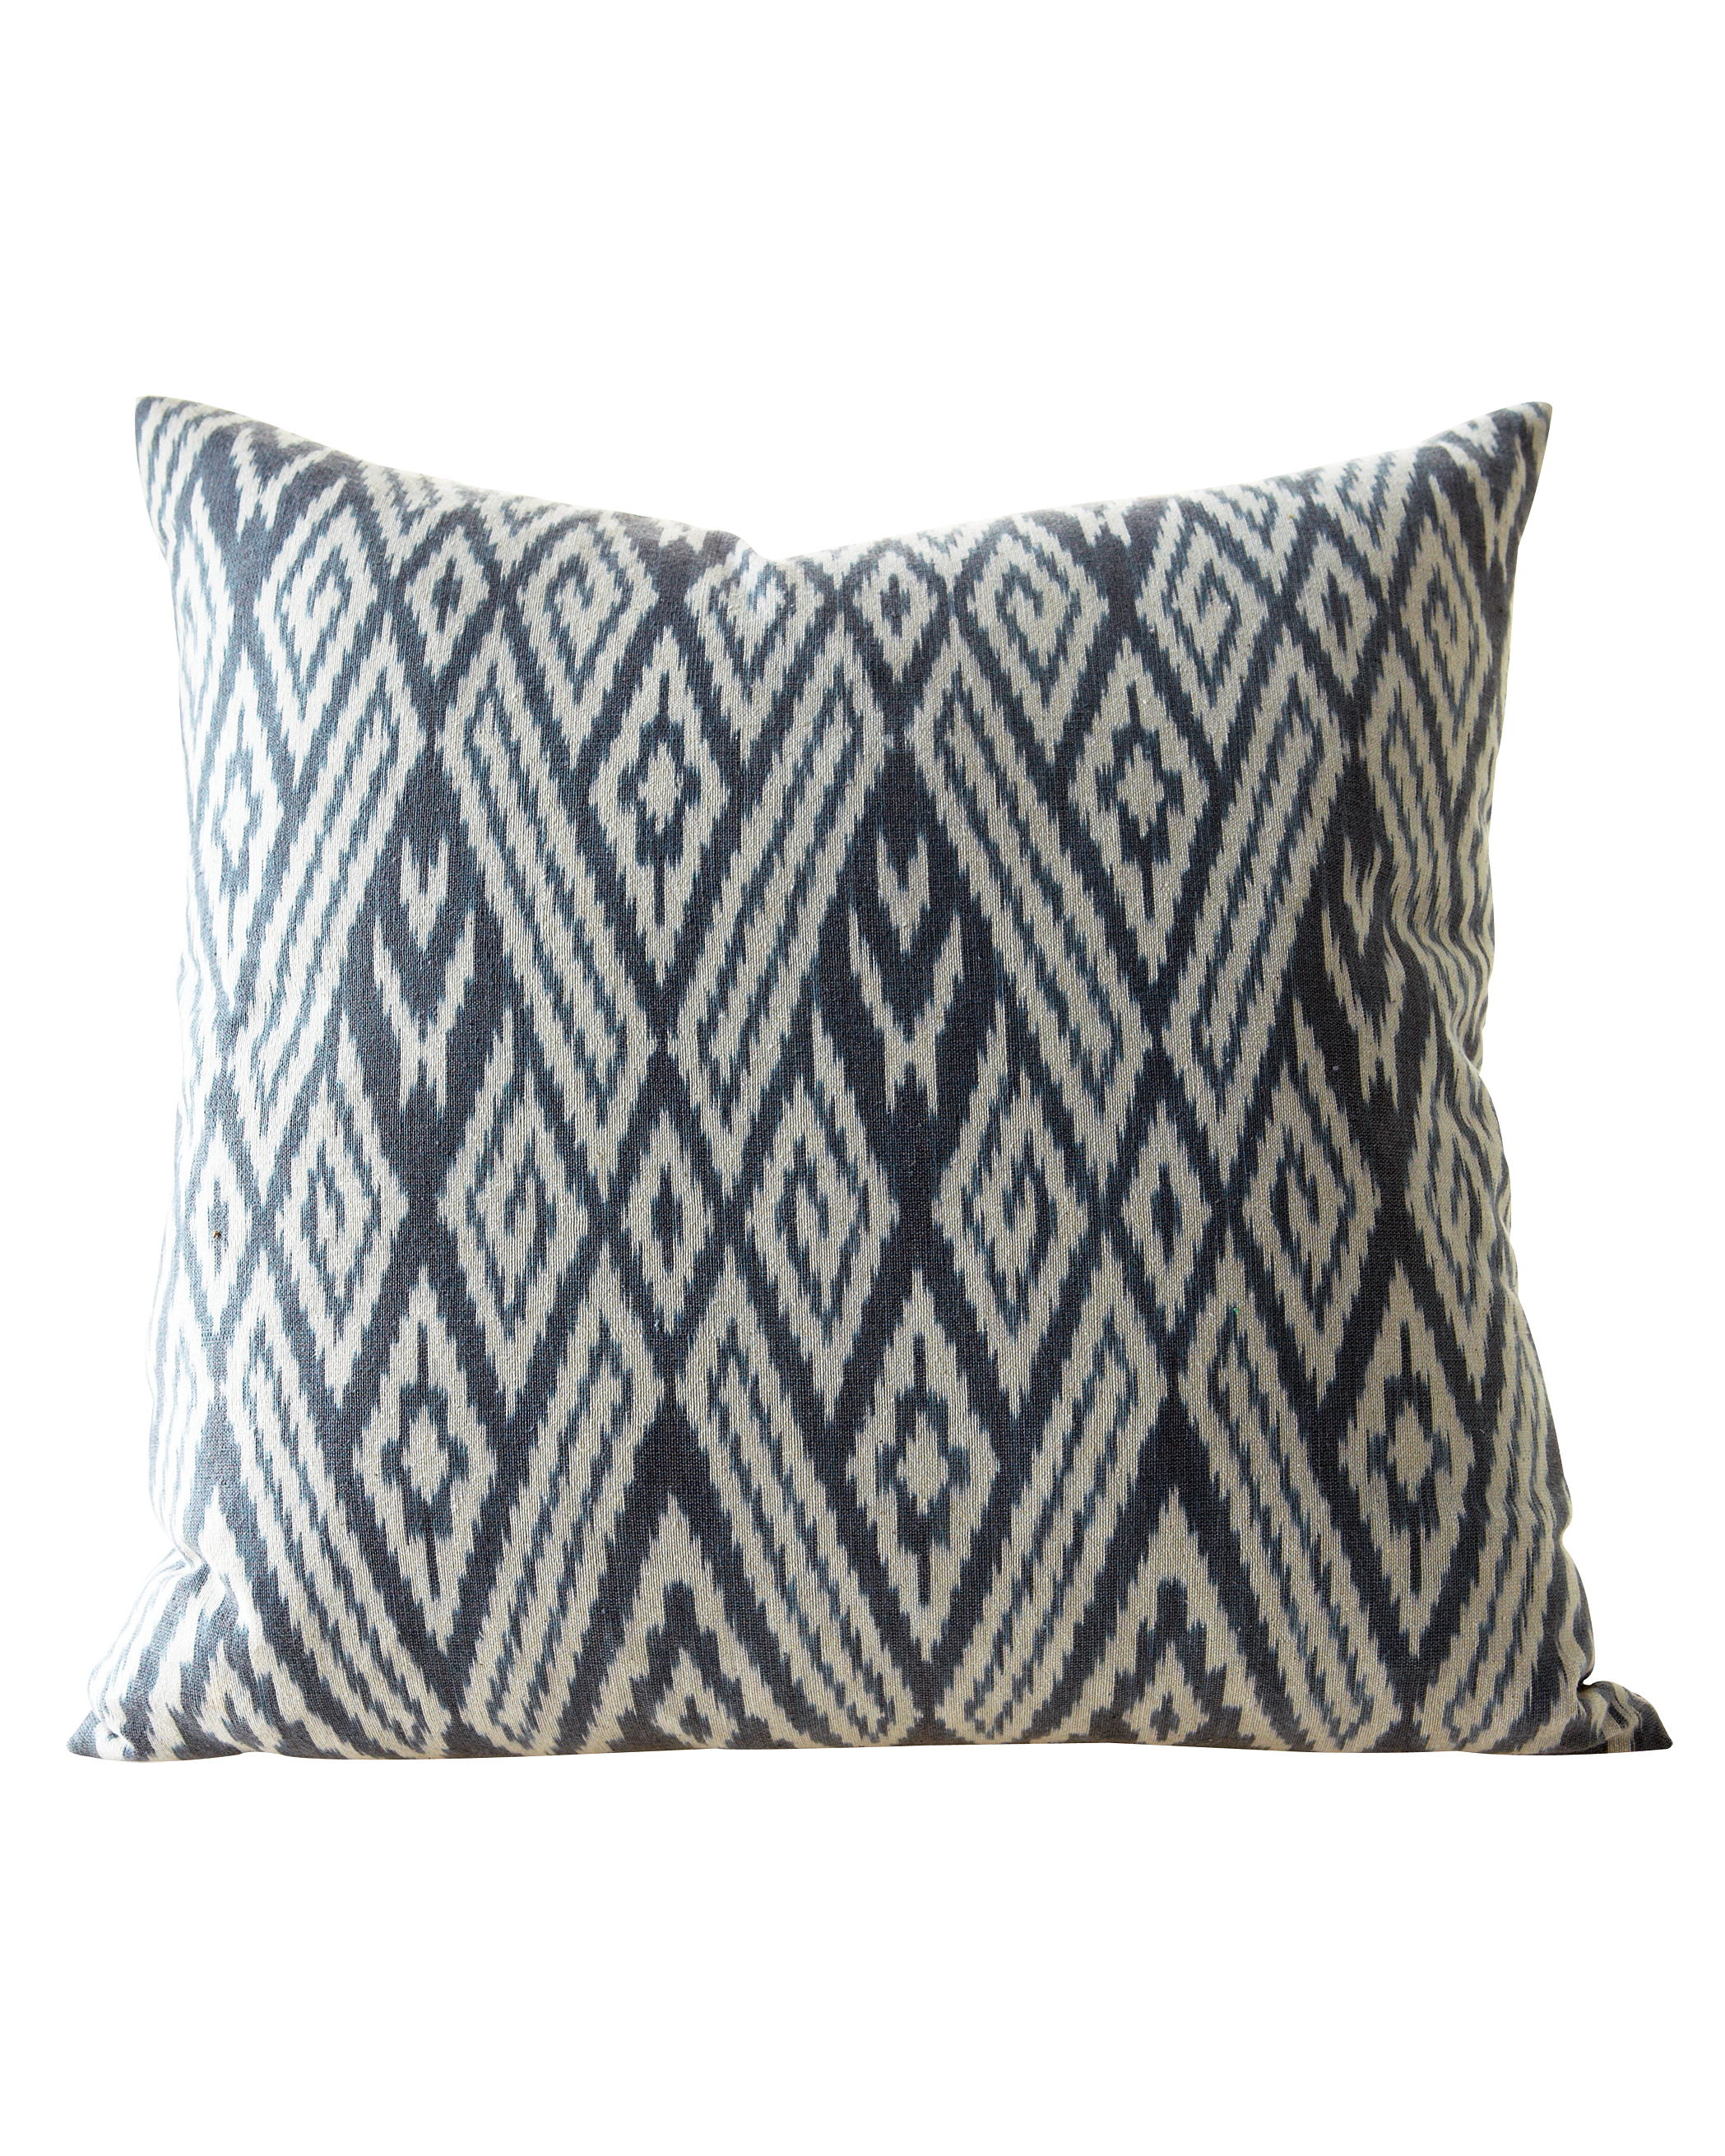 pillow-0811mwd107539.jpg